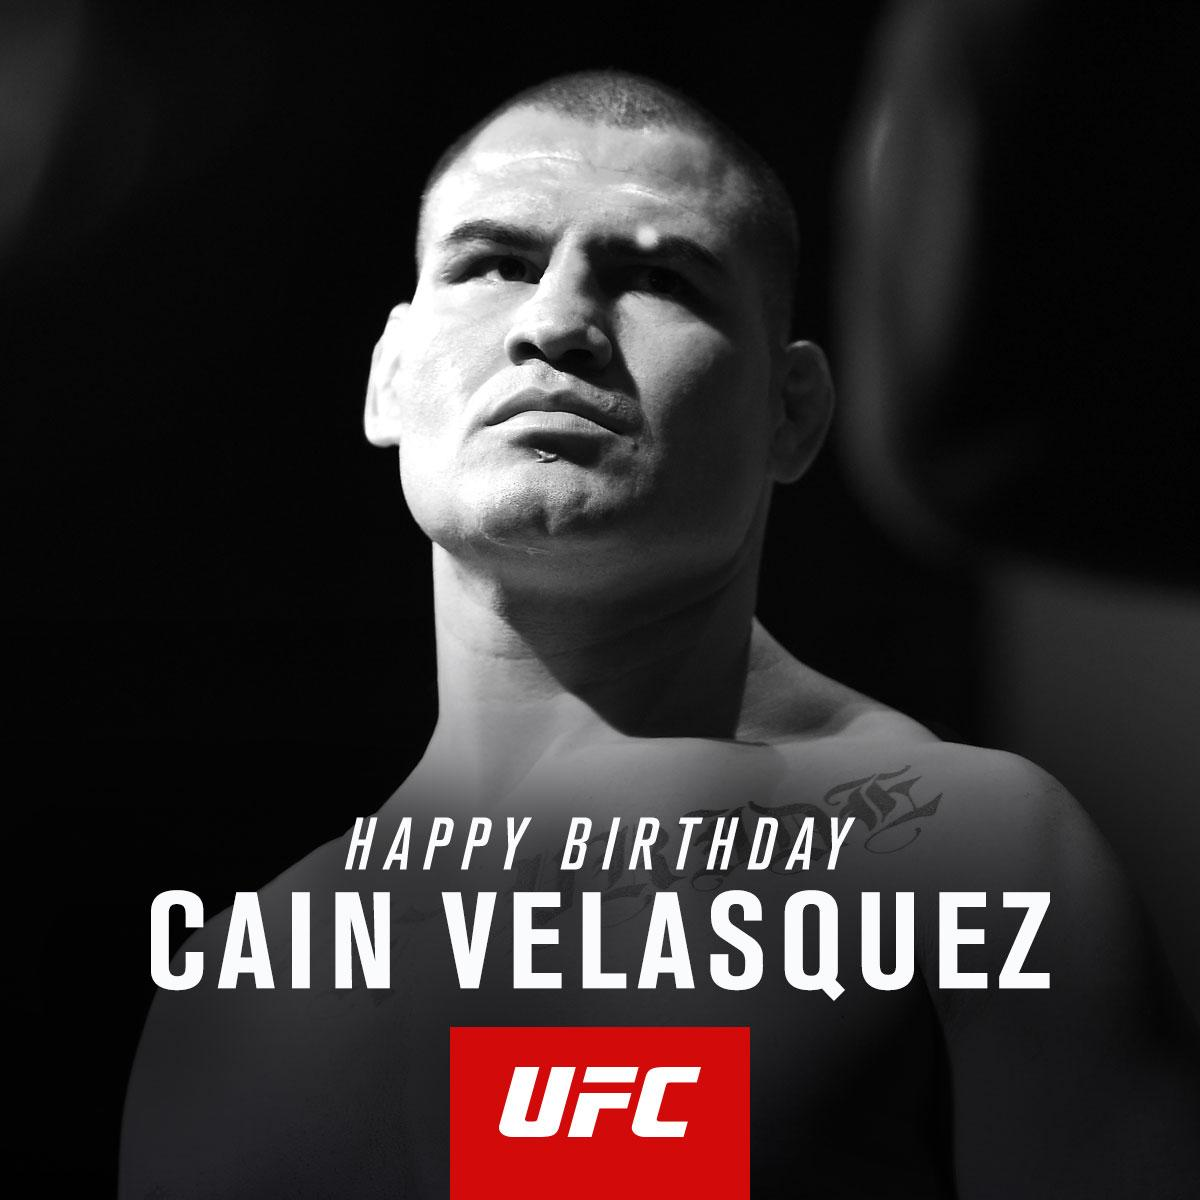 RT to wish @CainMMA a very special Happy Birthday!